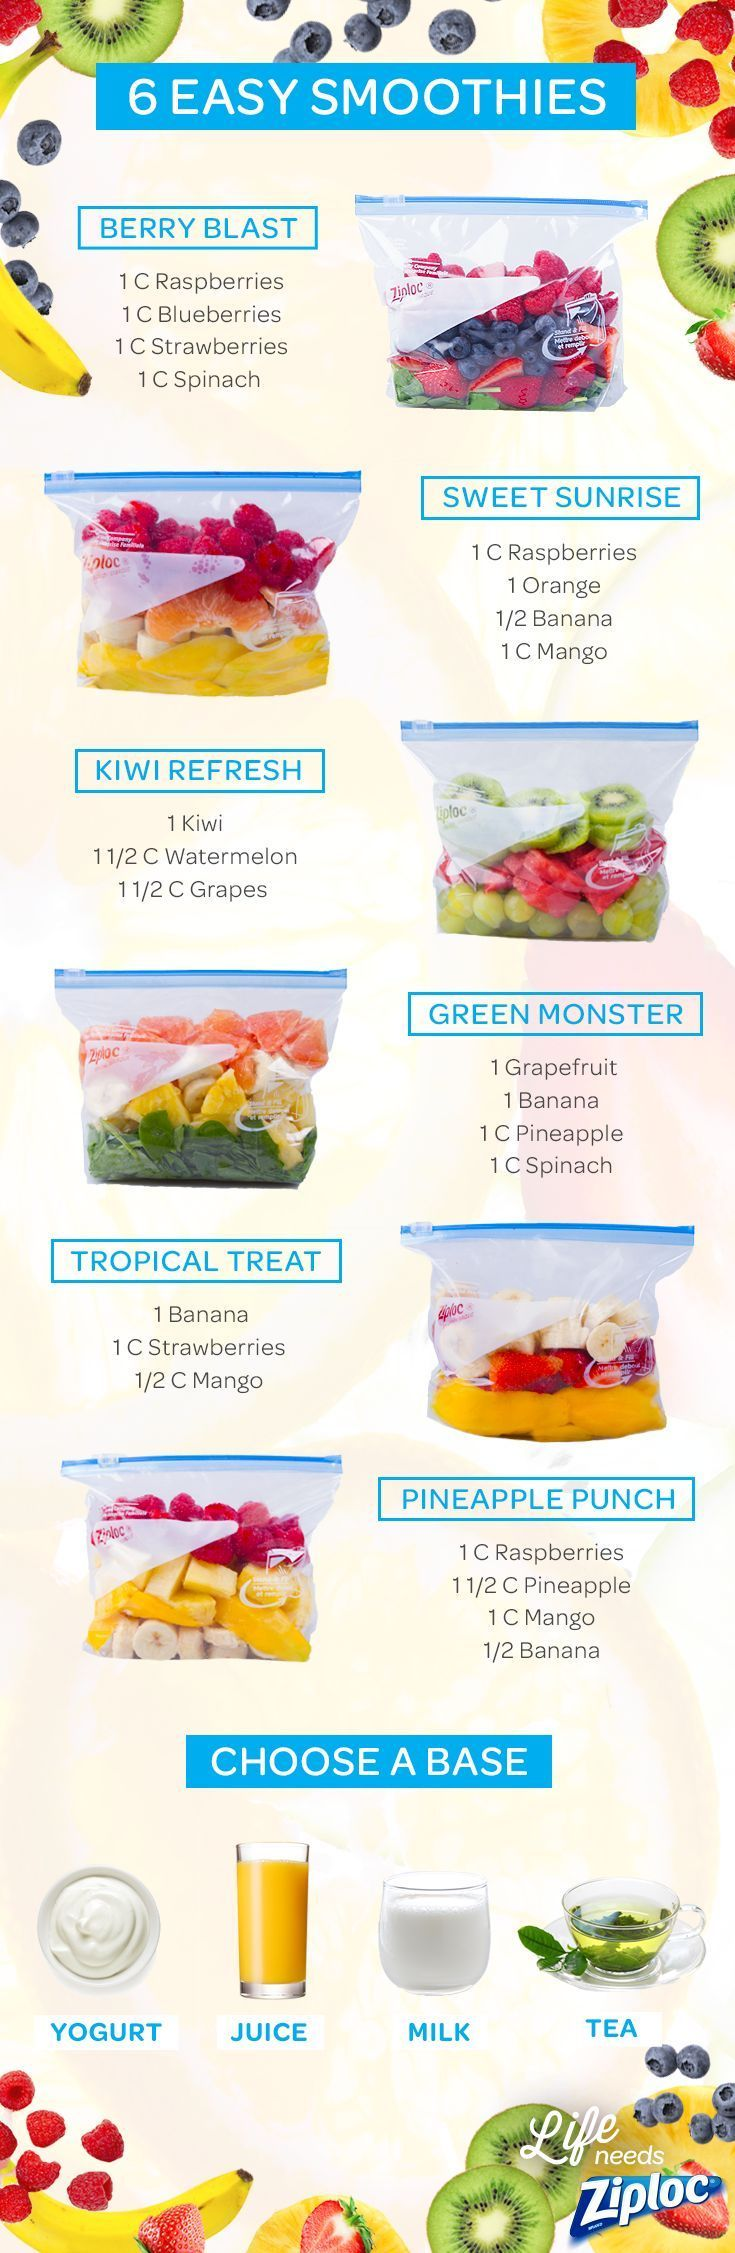 Shake up your smoothie routine with these tasty fruit and…